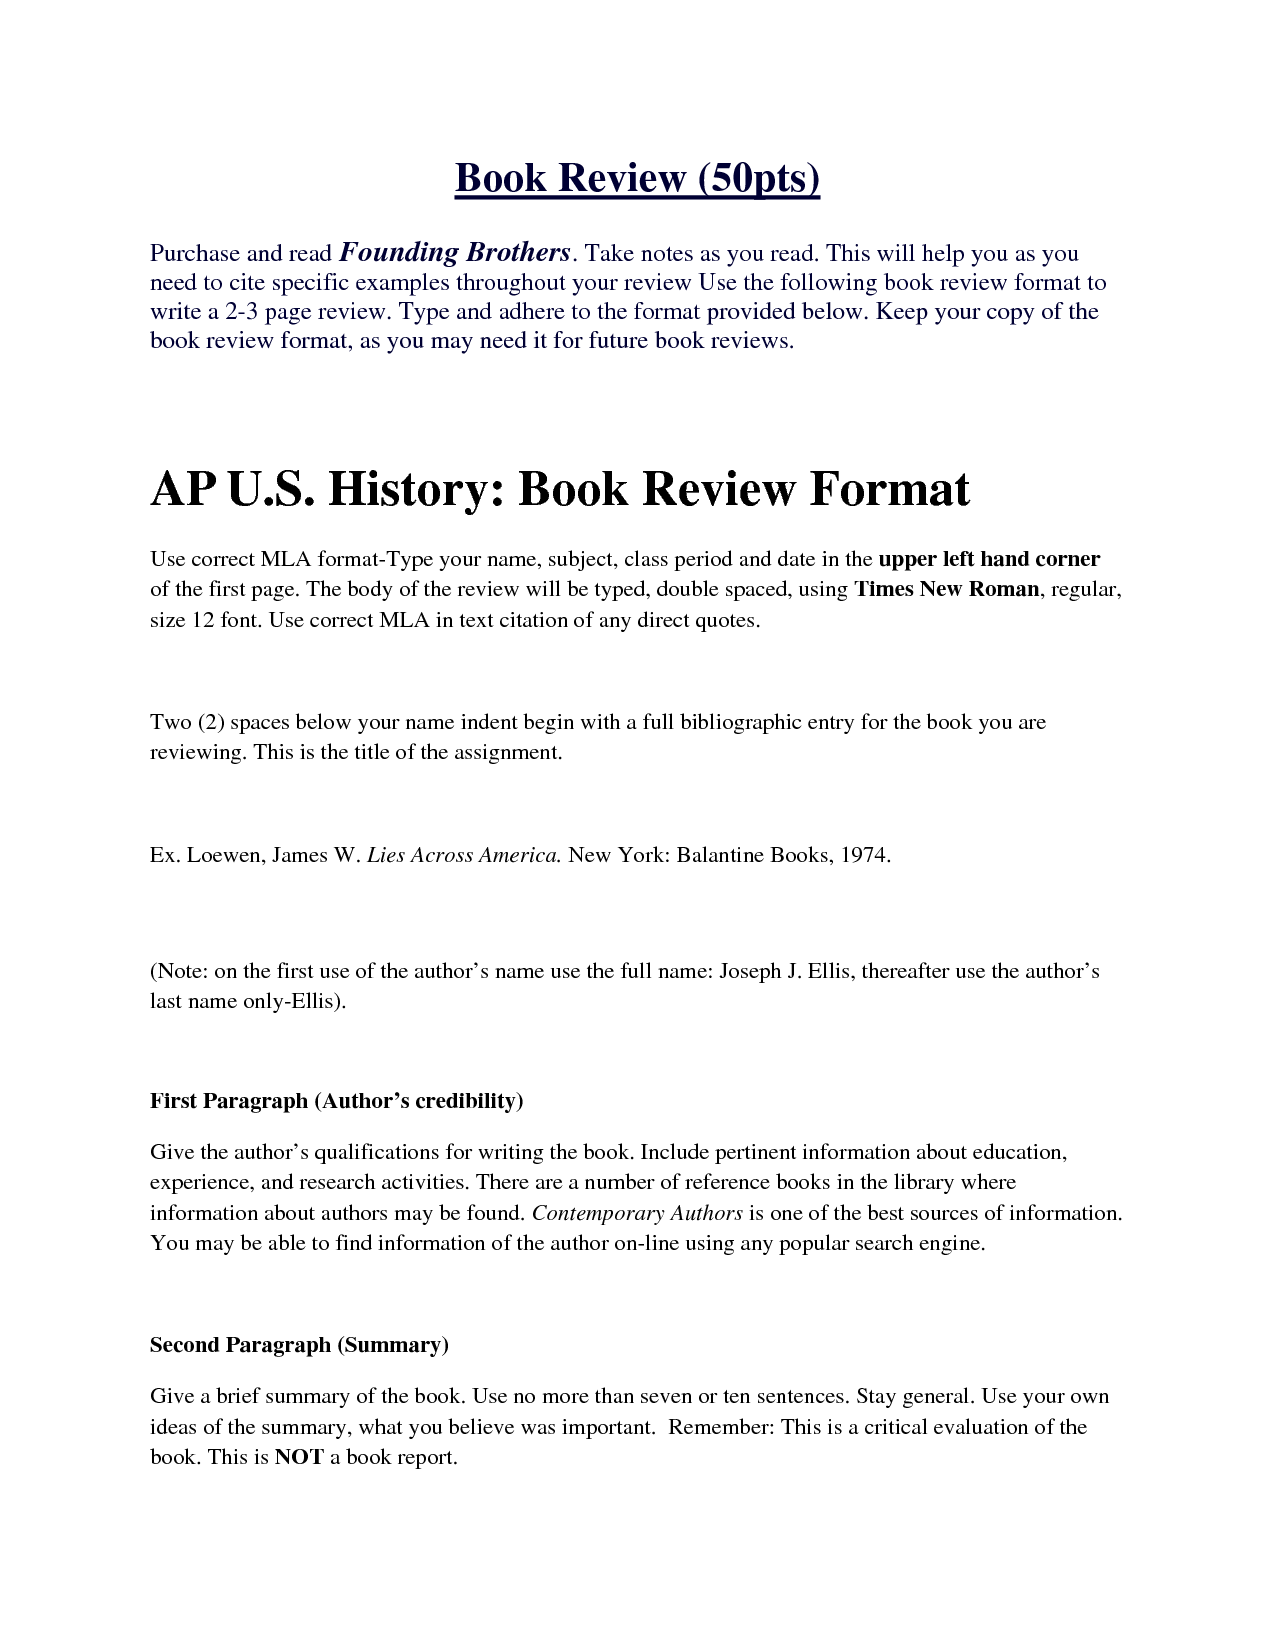 Example Book Review Essay – Book review examples for fiction books